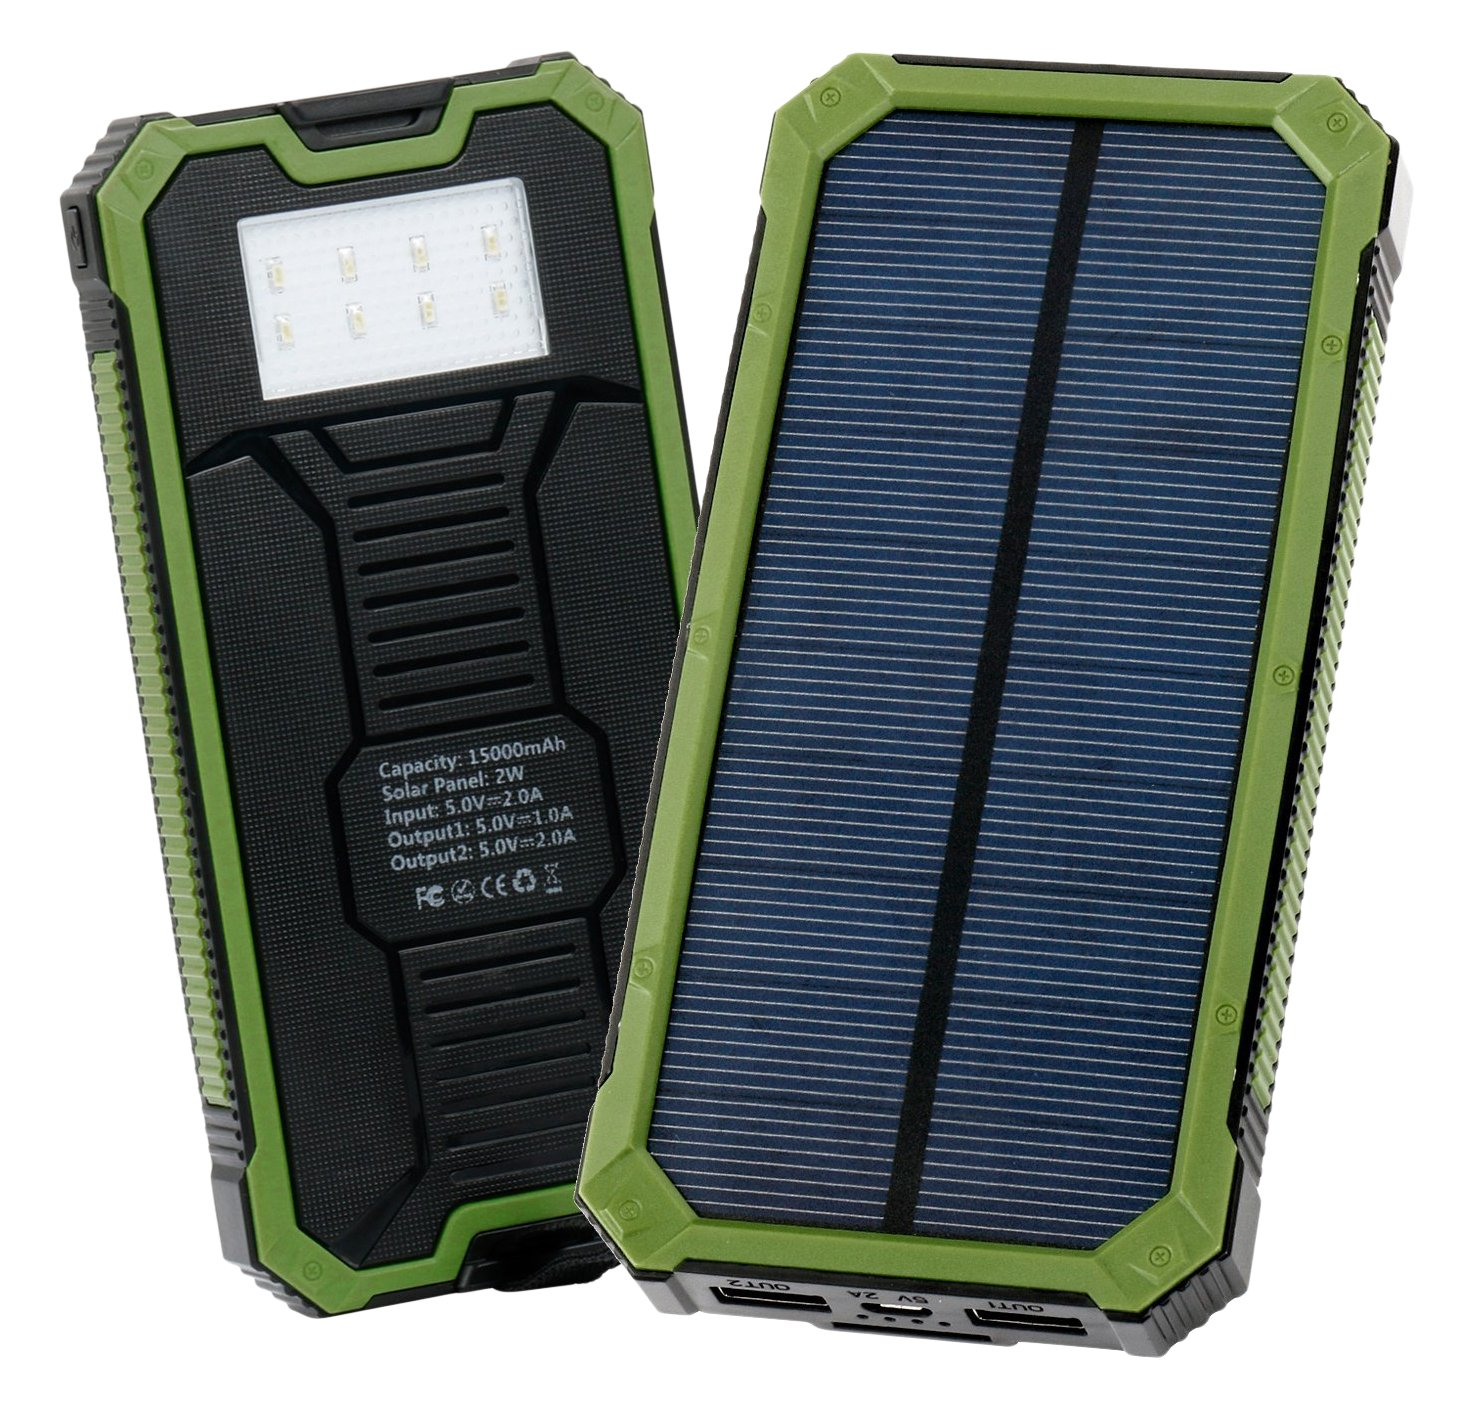 Levin Solar Charger 15000 Mah Solar Power Bank With 8 Led Flashlight Dual Usb.. 2